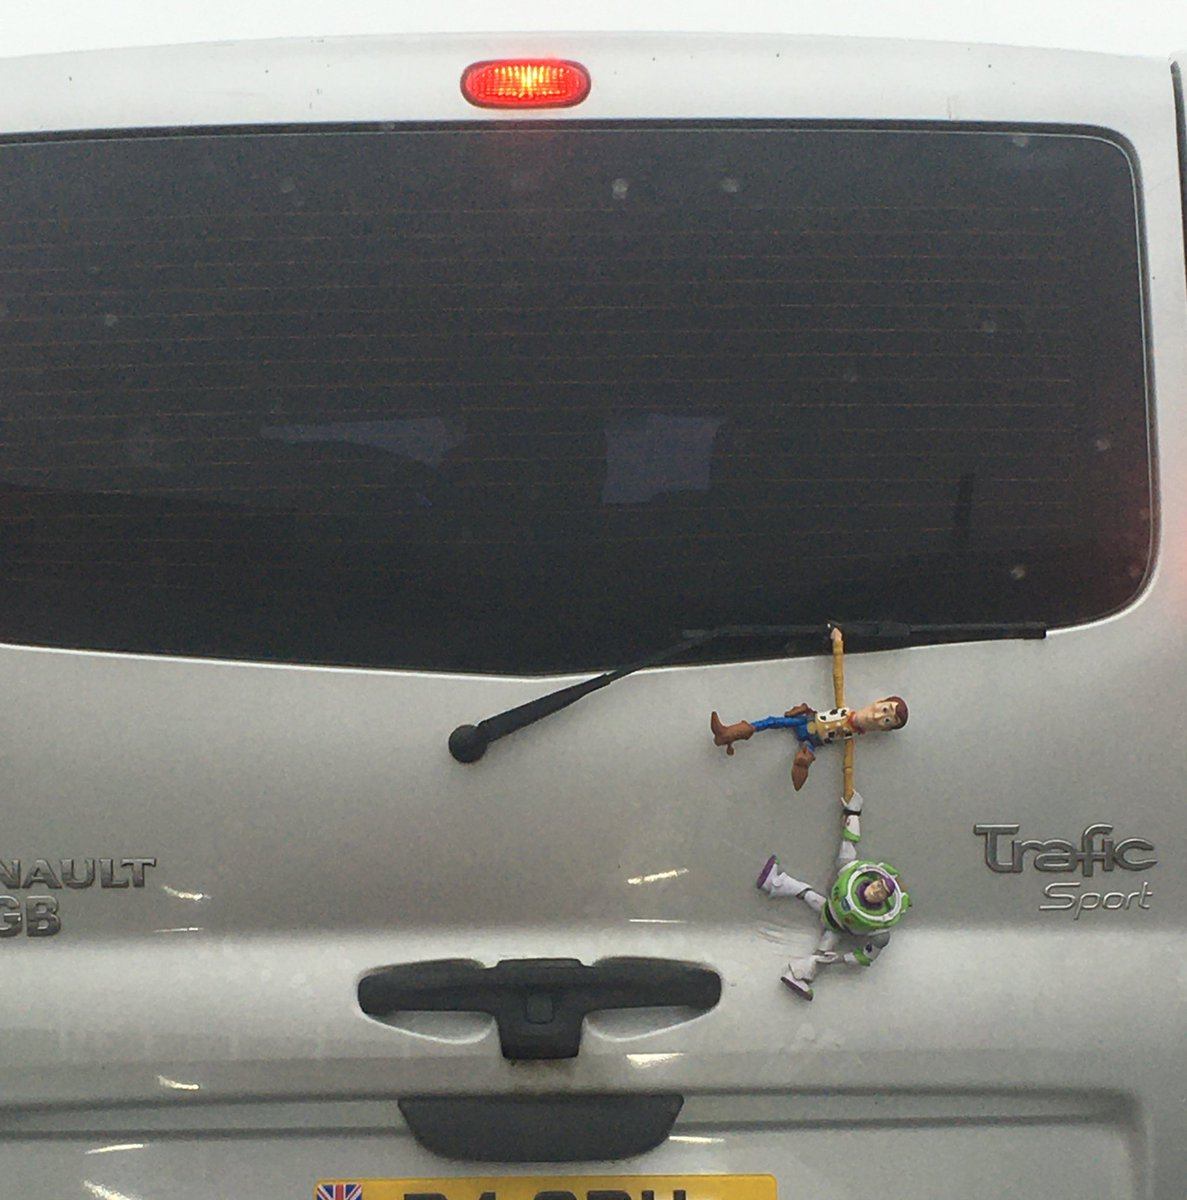 This made me smile today #WhatIfTheyreReal #ToyStory #WoodyAndBuzz #MadeMyDay pic.twitter.com/EhITerGzFe